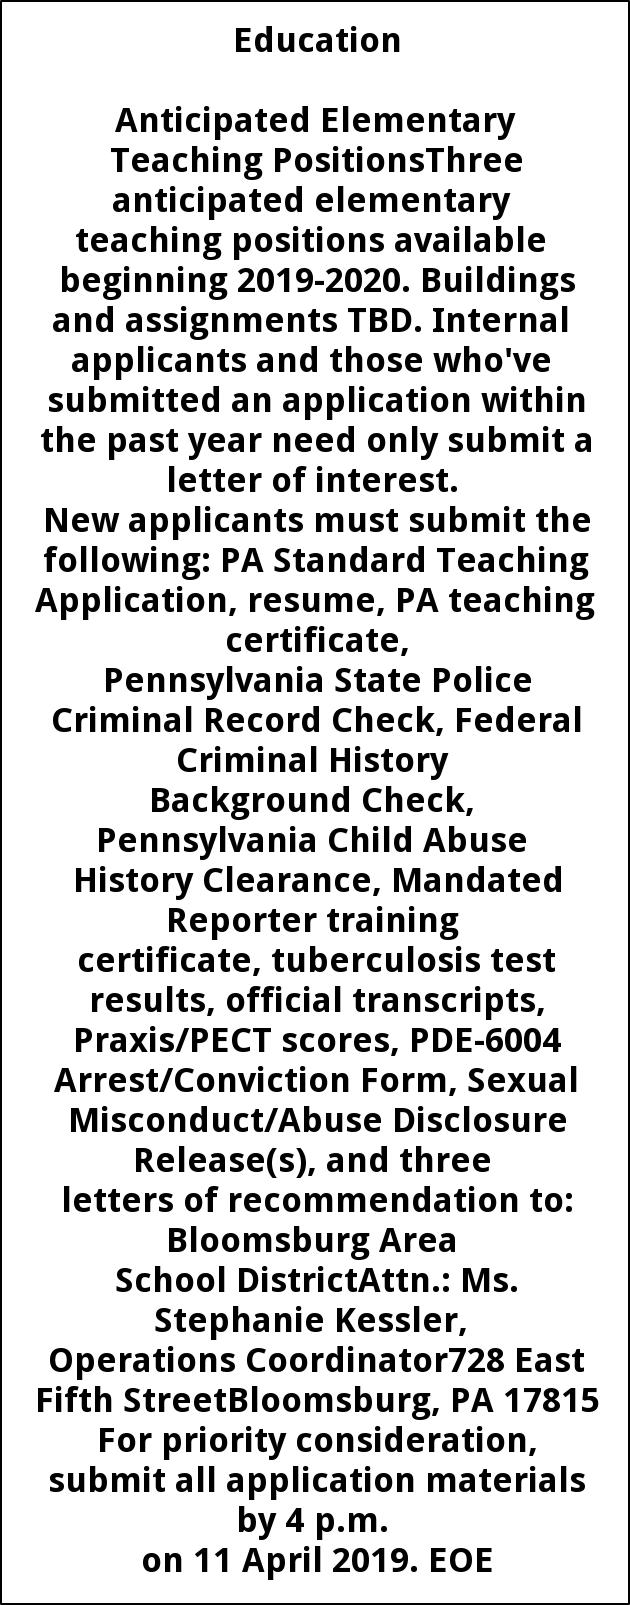 Anticipated Elementary Teaching Positions, Bloomsburg Area